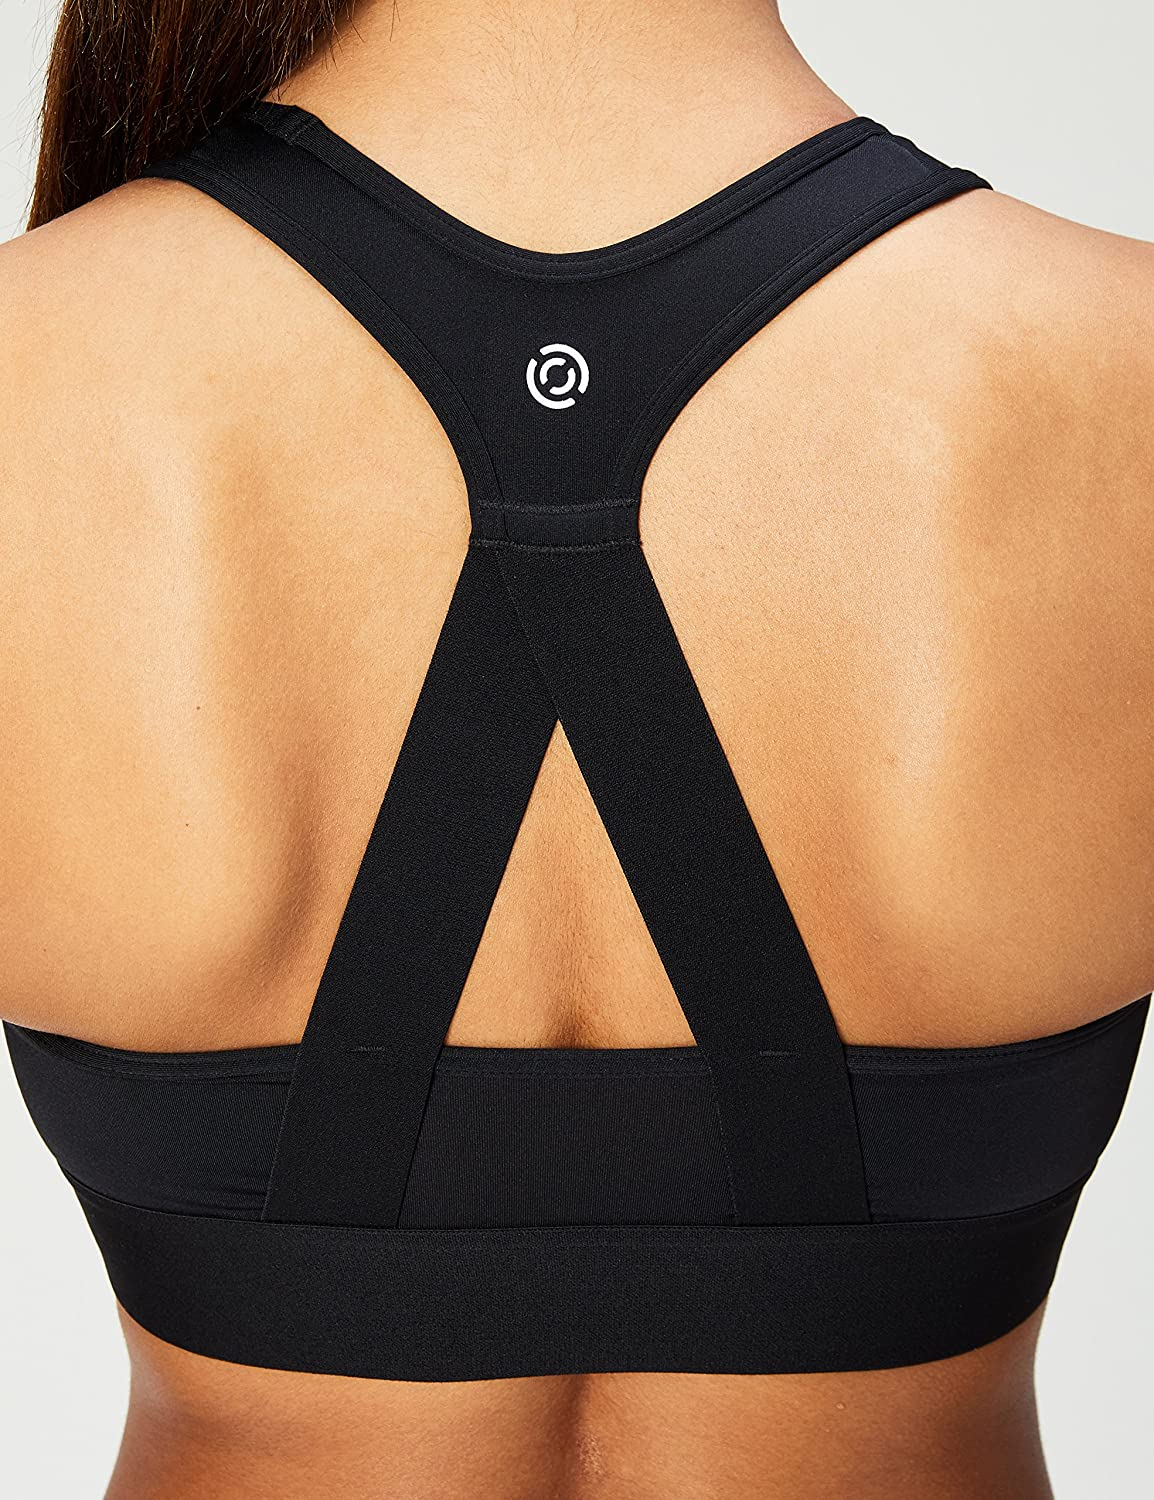 XS-3X Cross Back Sports Bra with Removable Cups Core 10 Womens Brand